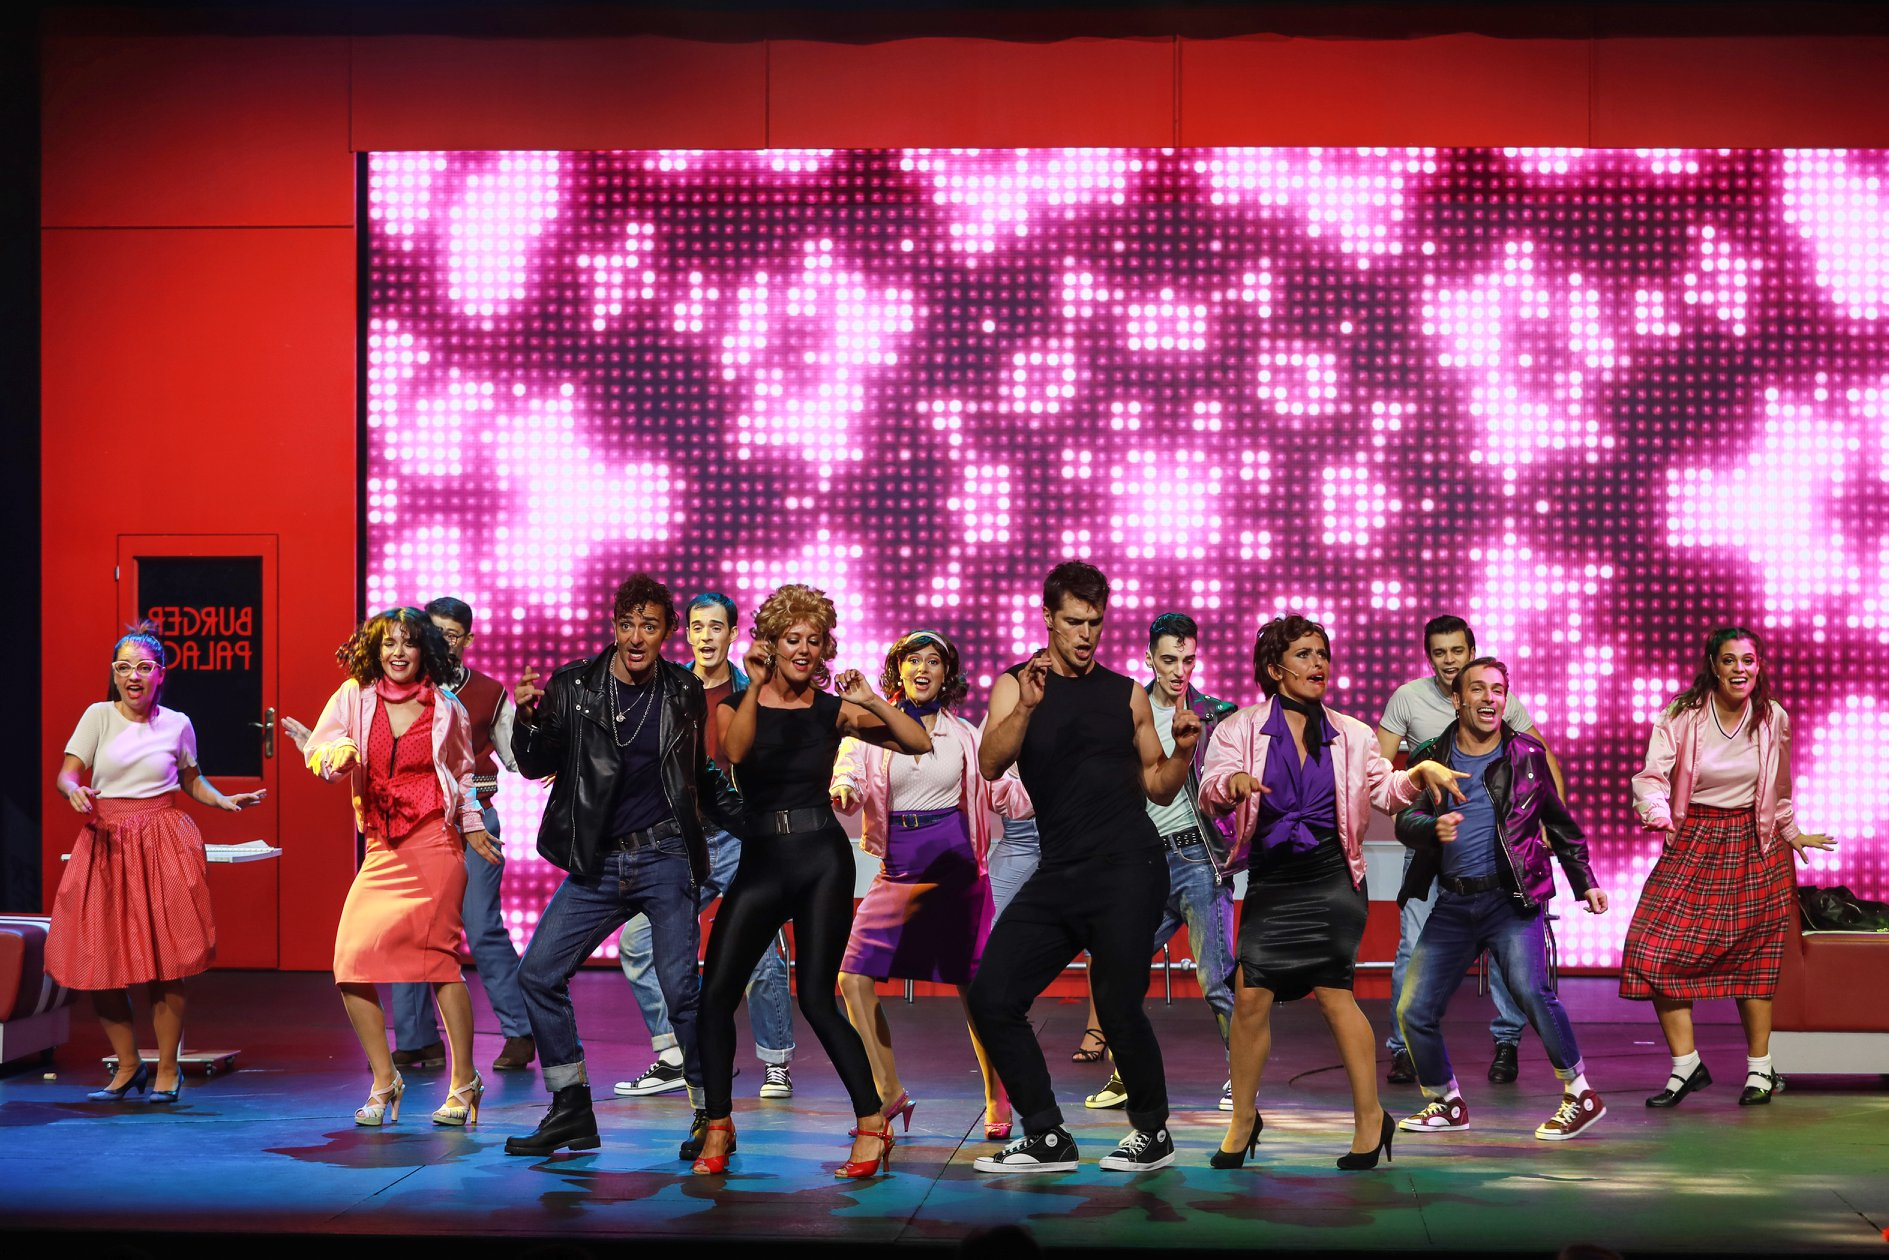 """<span  class=""""uc_style_uc_tiles_grid_image_elementor_uc_items_attribute_title"""" style=""""color:#ffffff;"""">Ana Paula Rocha - Teatro - Grease - Setembro 2018 - 002</span>"""